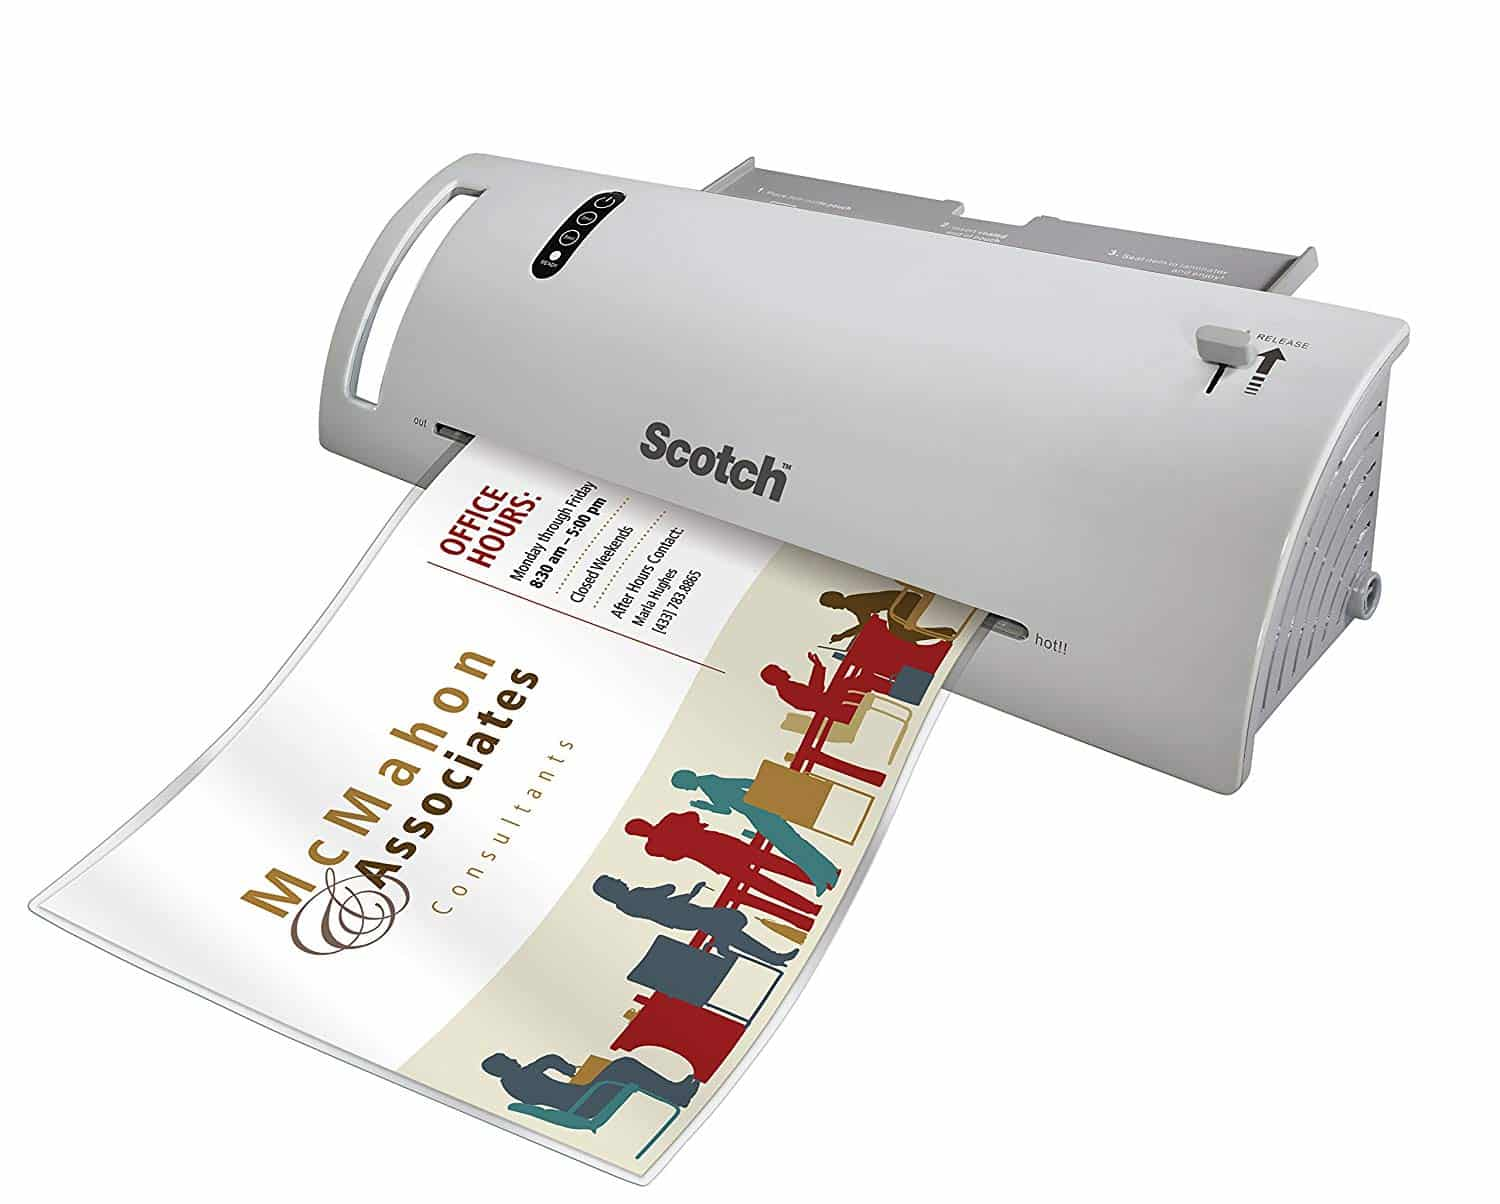 11. Scotch TL902VP Thermal Laminator